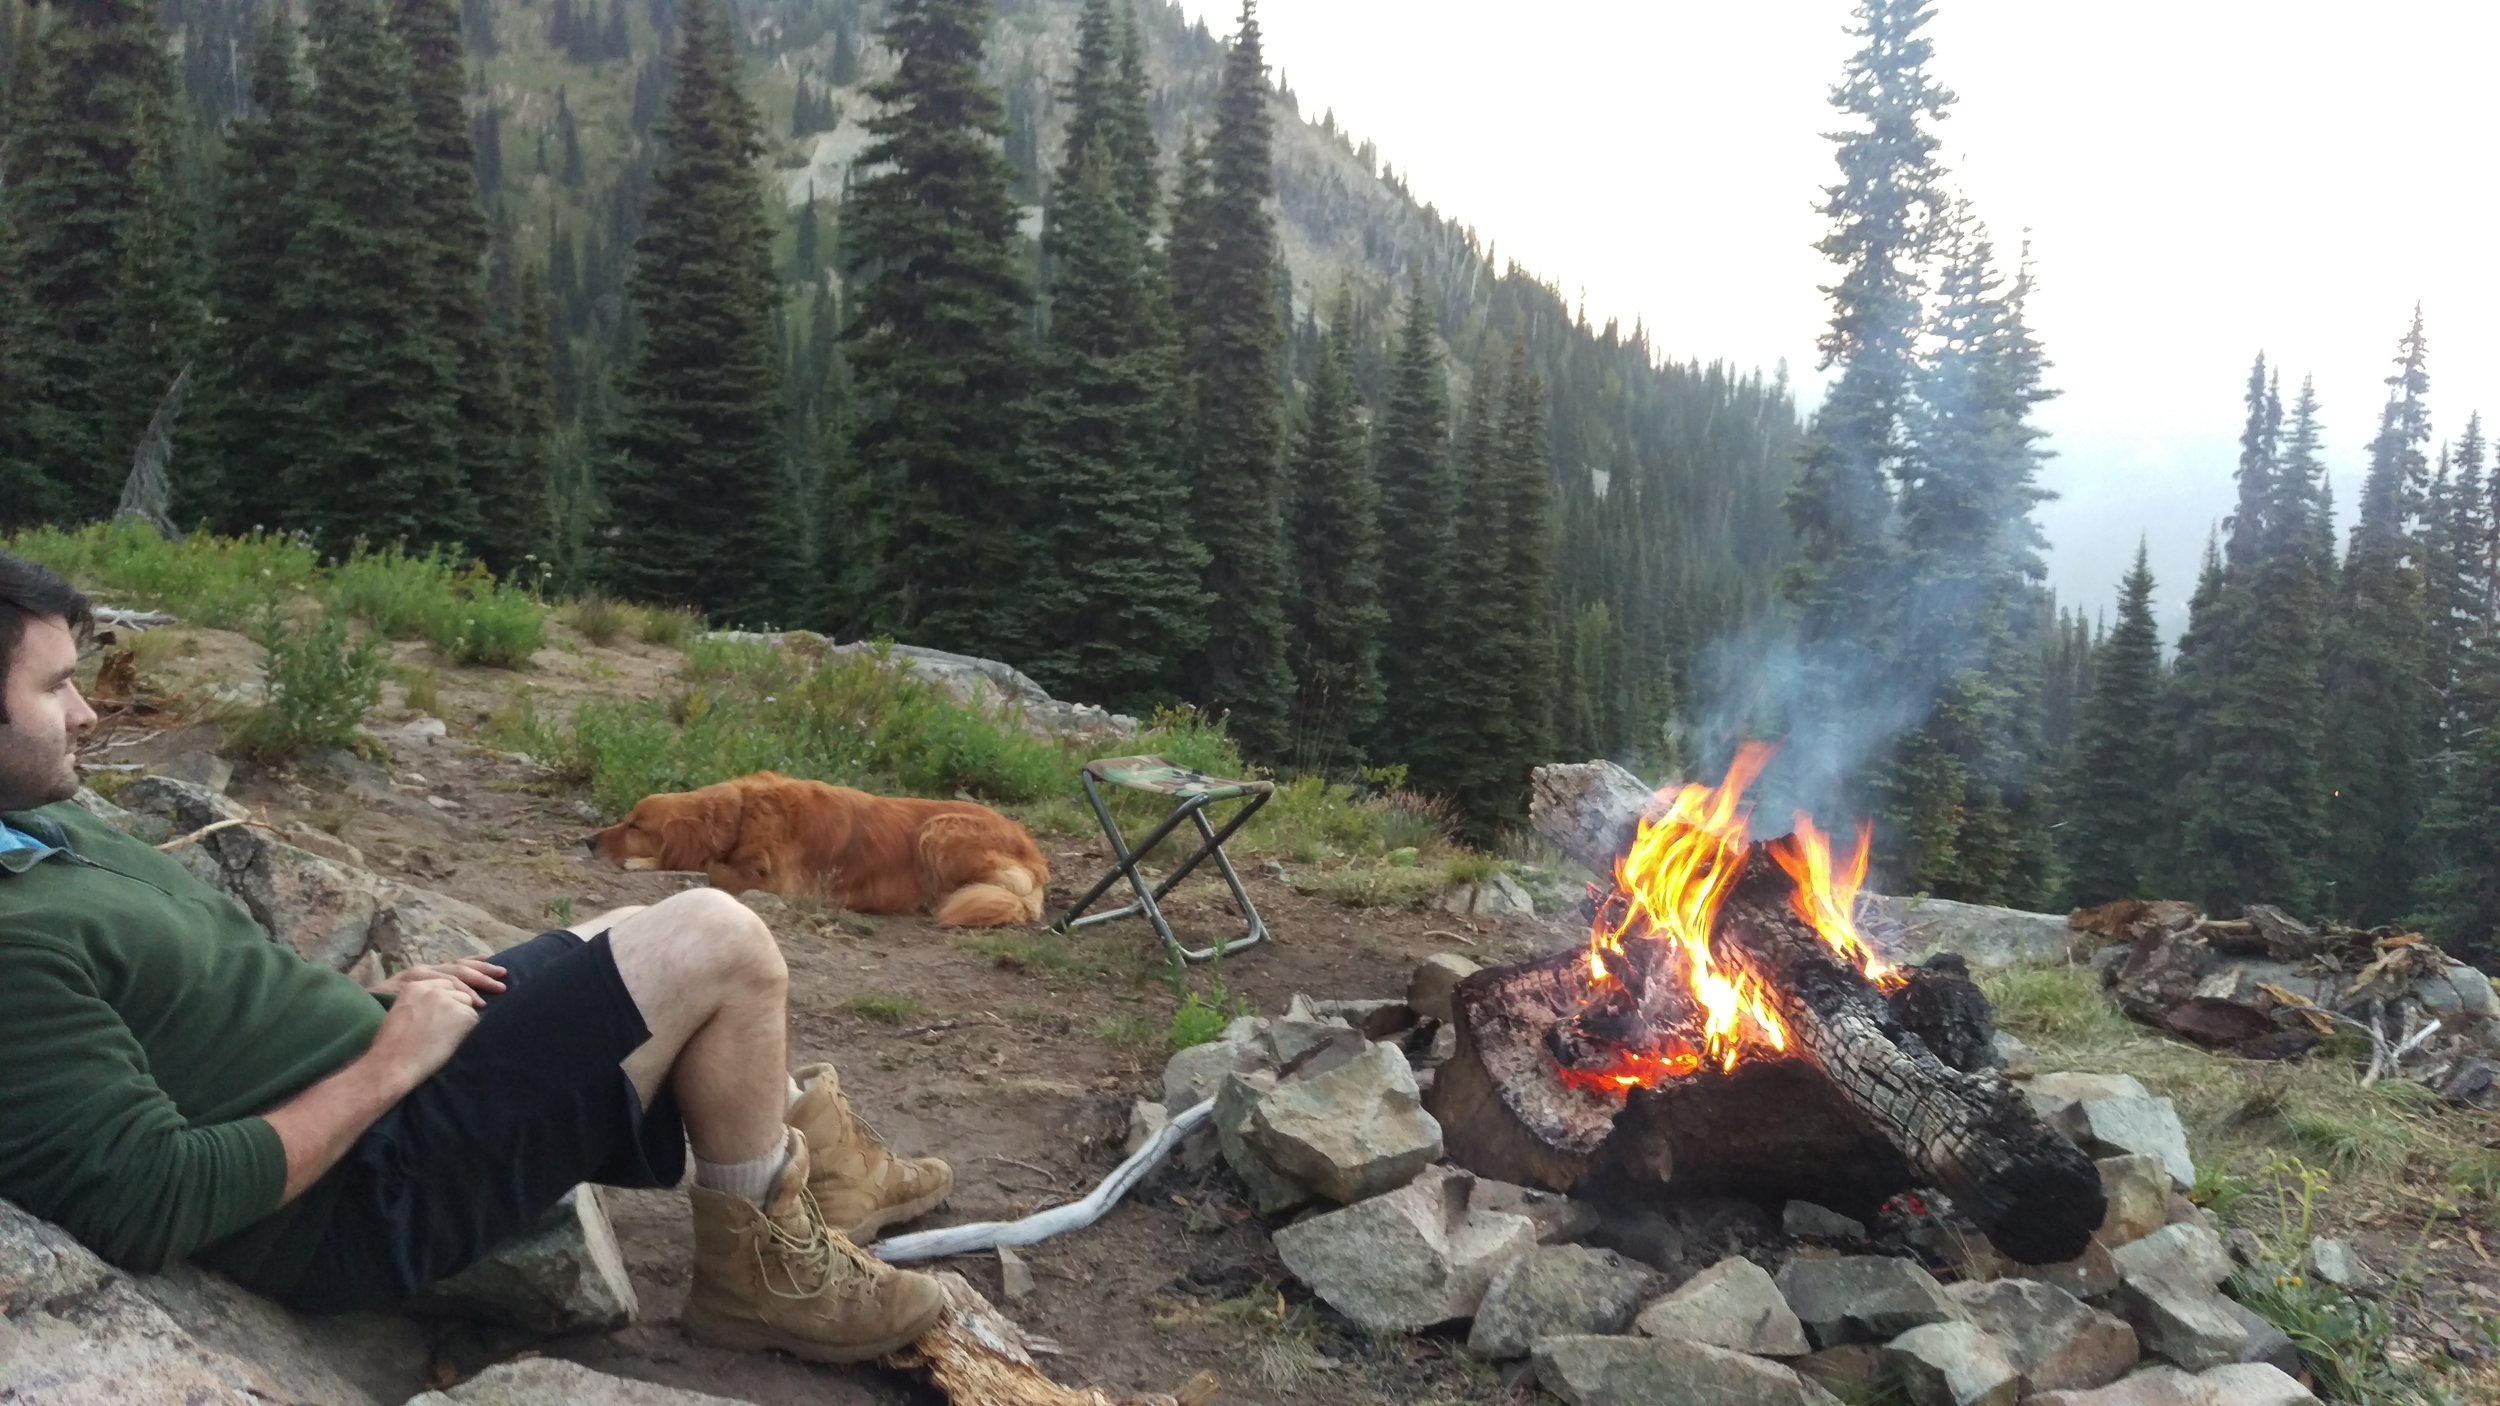 Camping in Rainier National Park